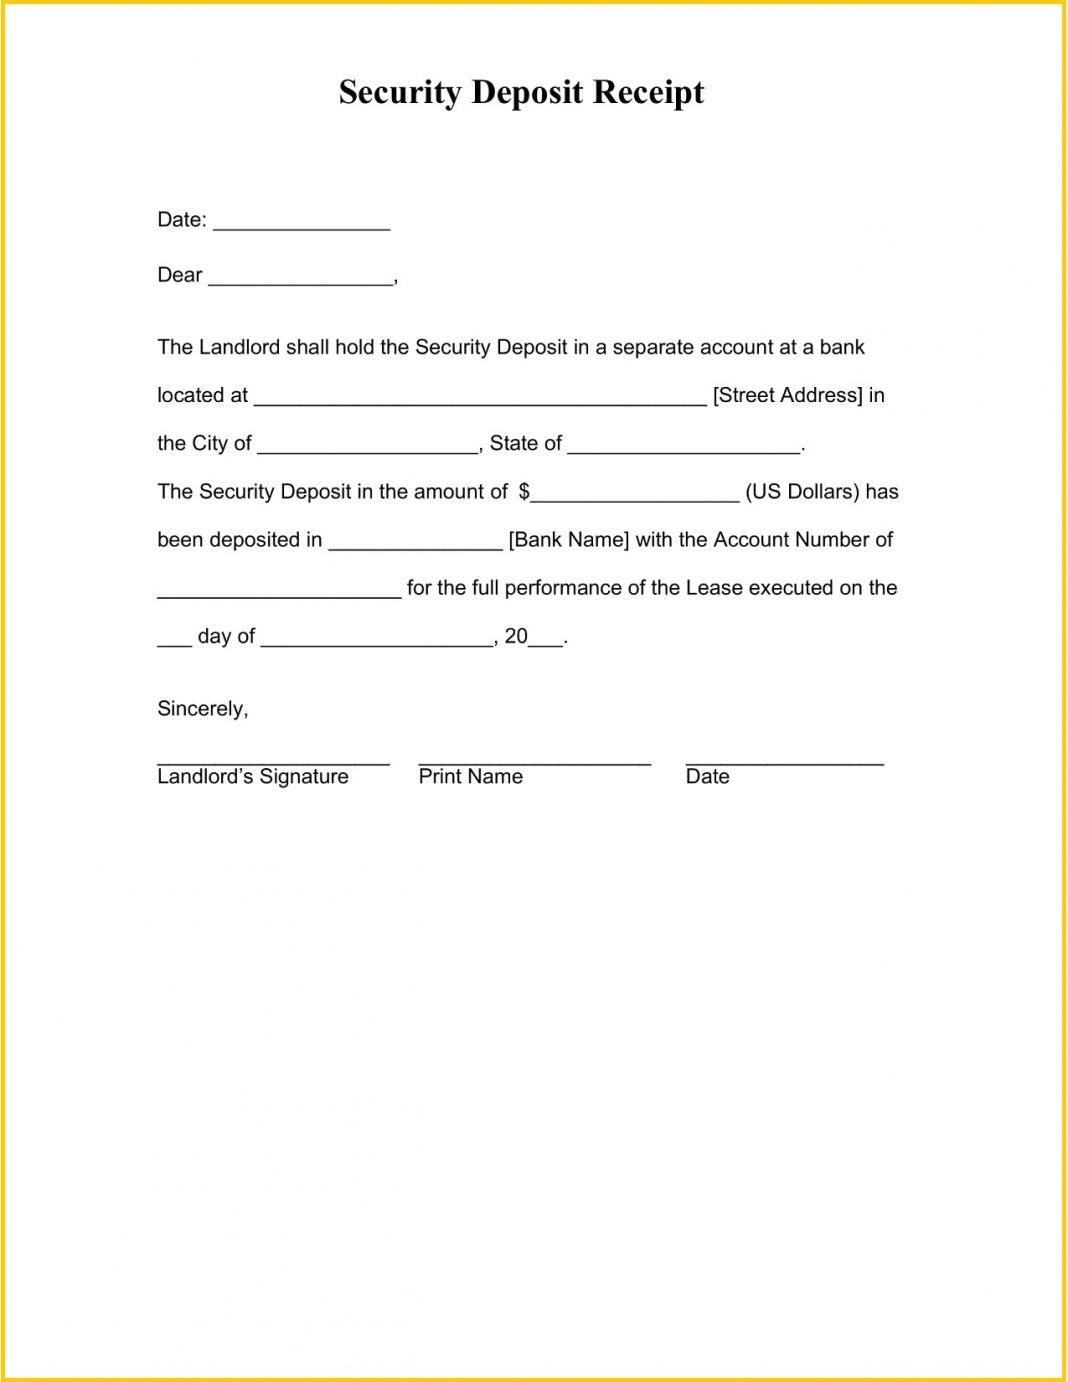 Security Deposit Receipt Form Word Template Chicago Massachusetts Agreement California  Sample Large